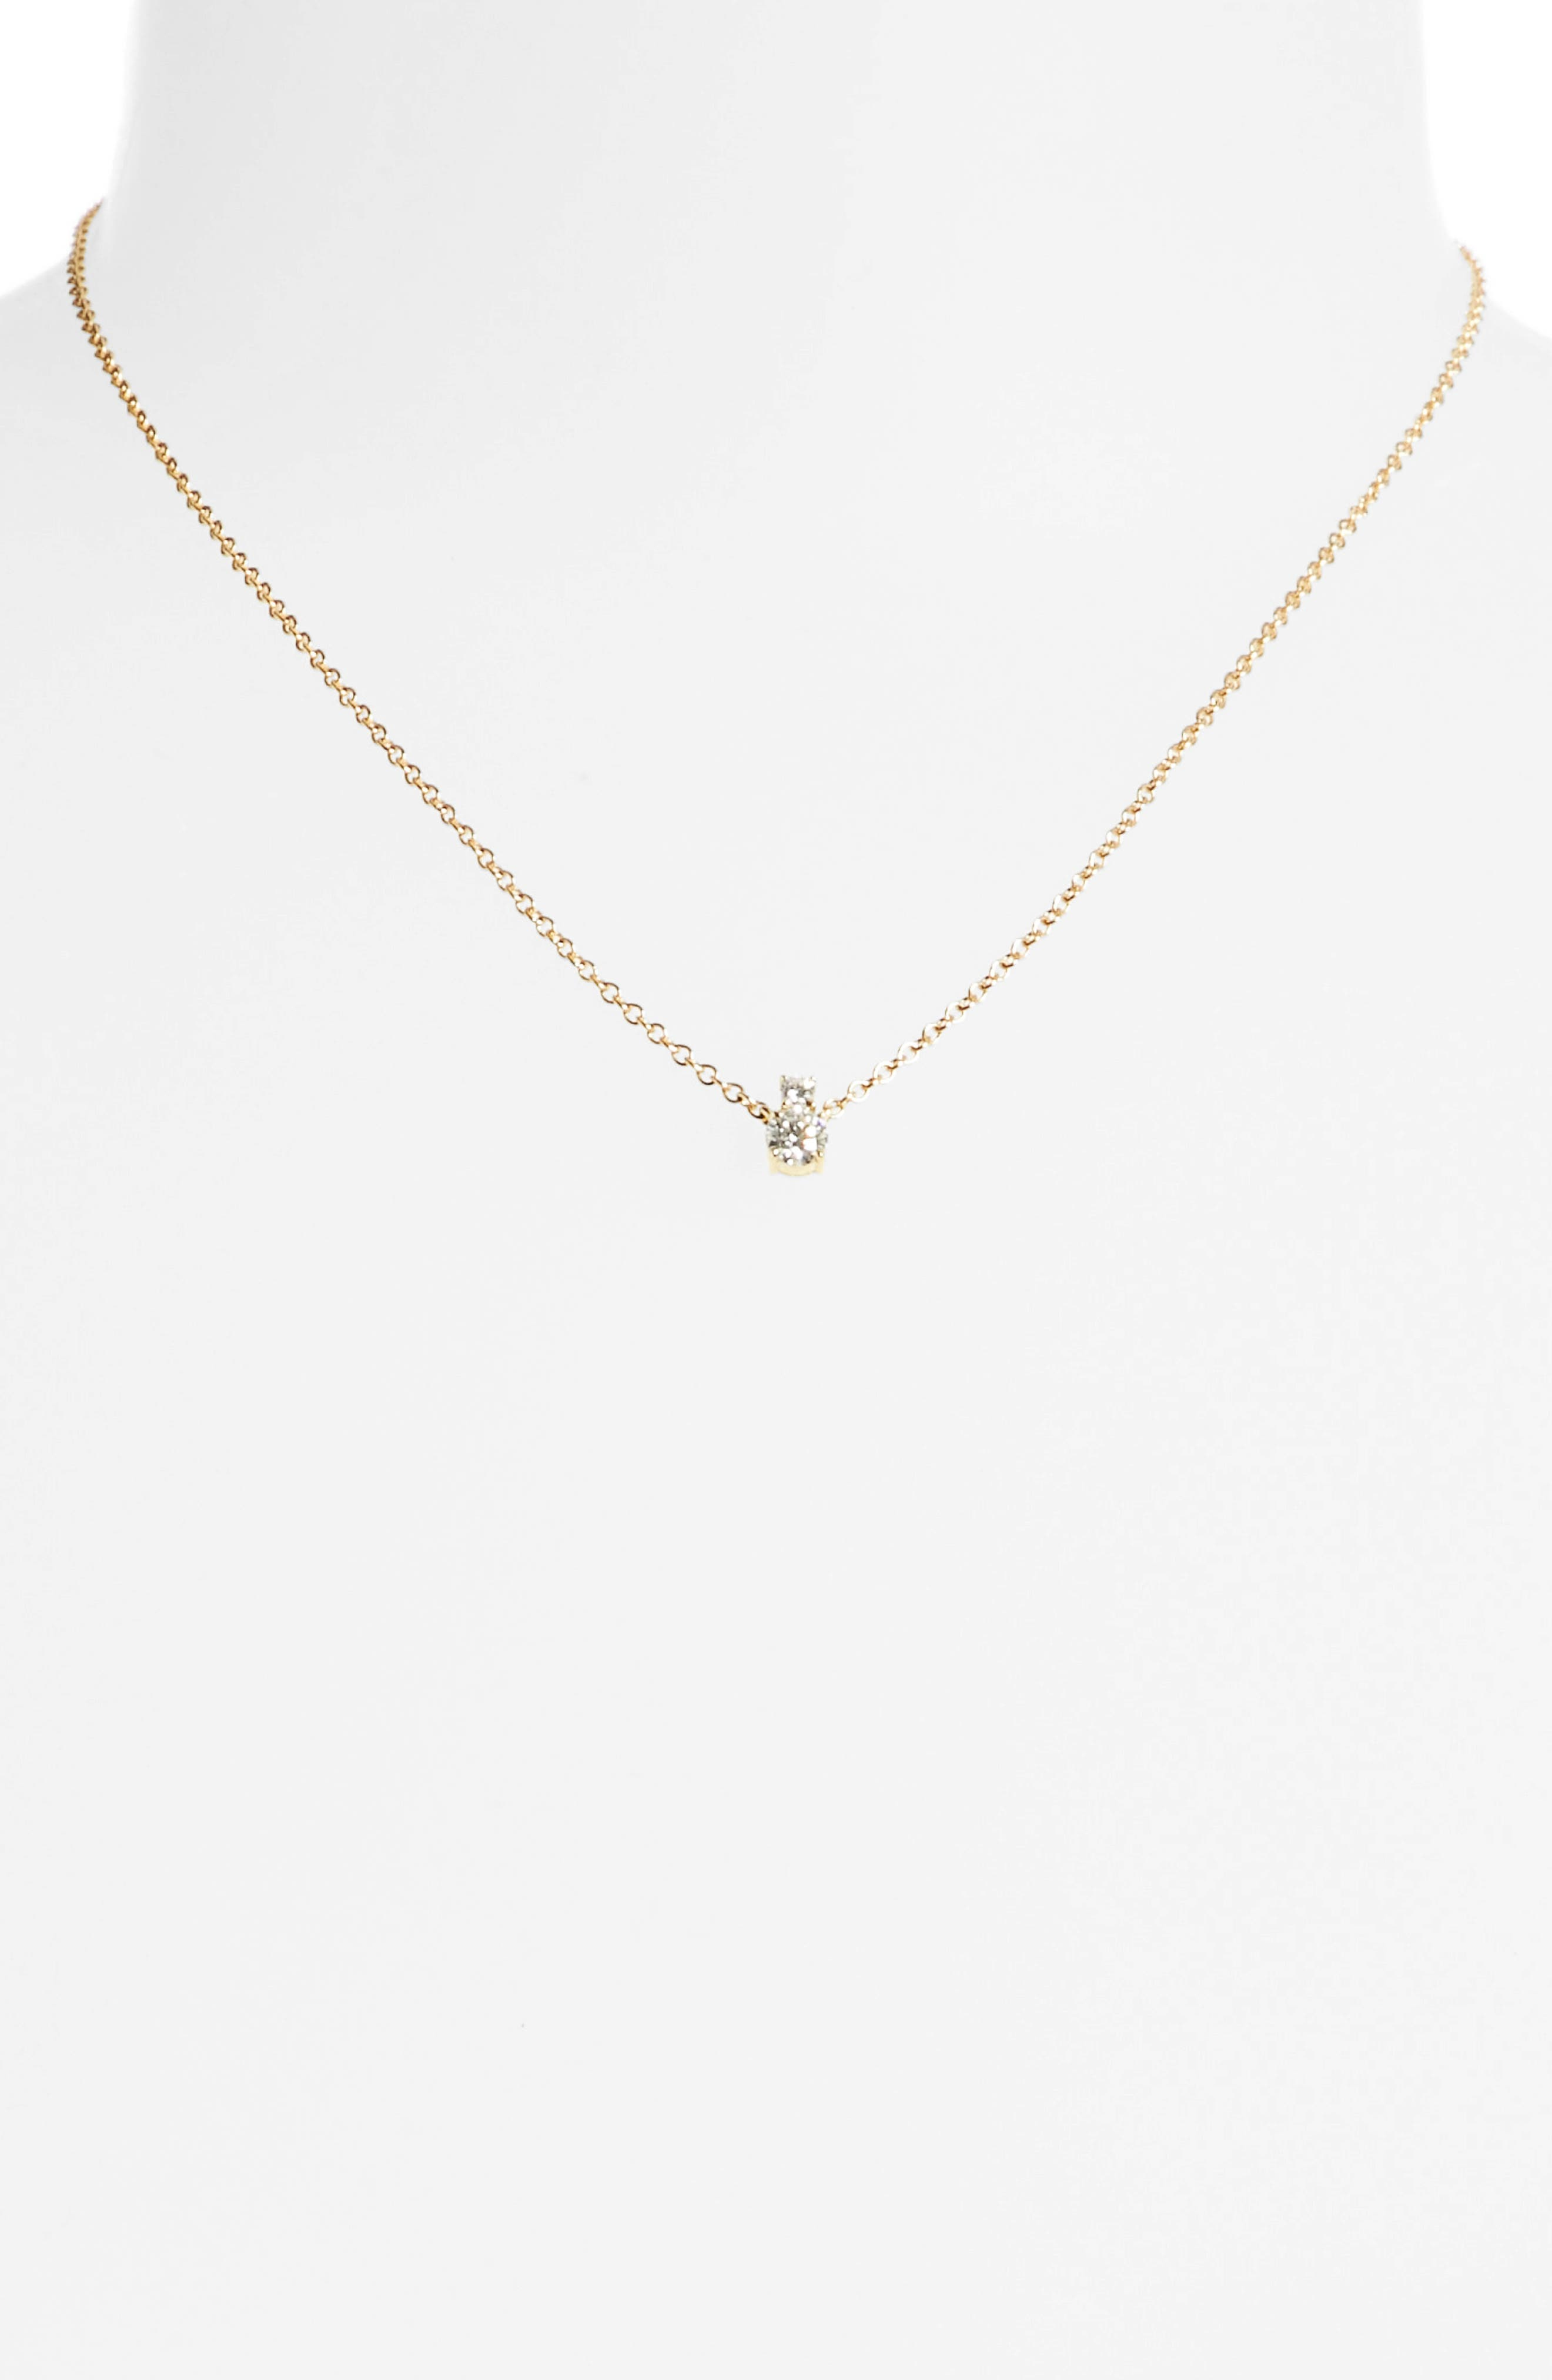 Prive Luxe 18K Gold & Diamond Solitaire Necklace,                             Alternate thumbnail 2, color,                             710